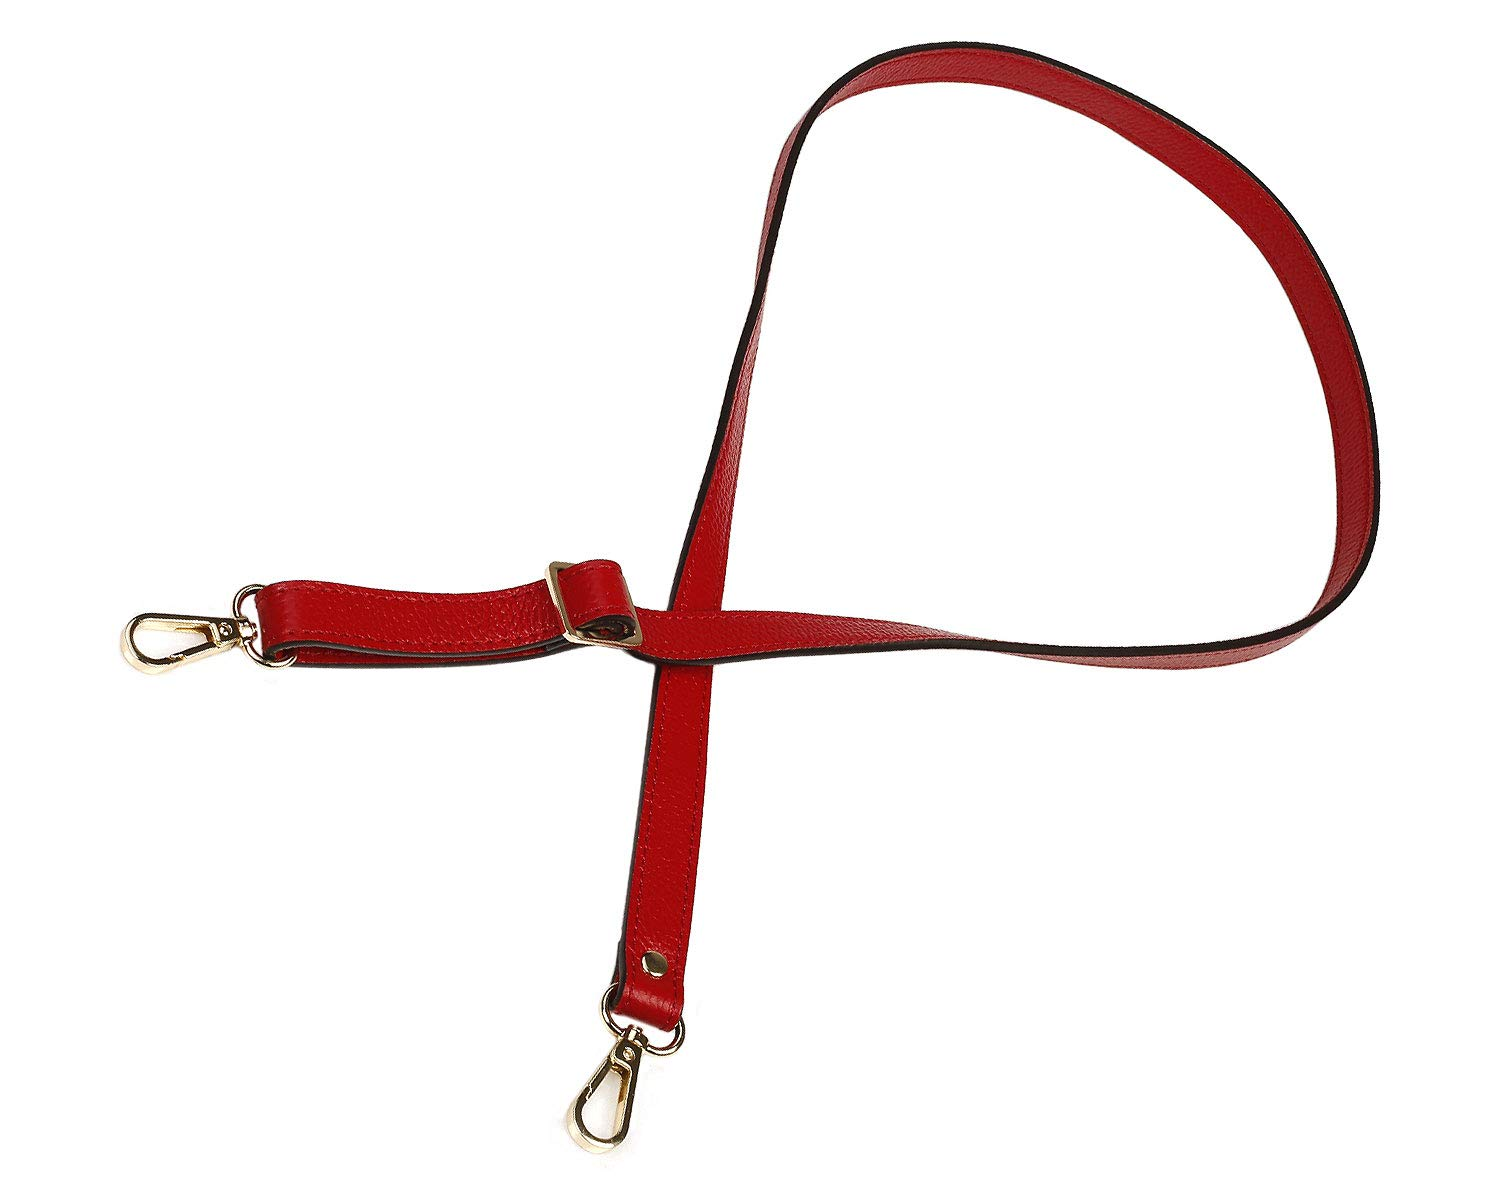 26-51 inch Gold Hardware VanEnjoy Full Grain Leather Adjustable Replacement Strap Cross Body Bag Purse 1.8 cm Width Brownish red